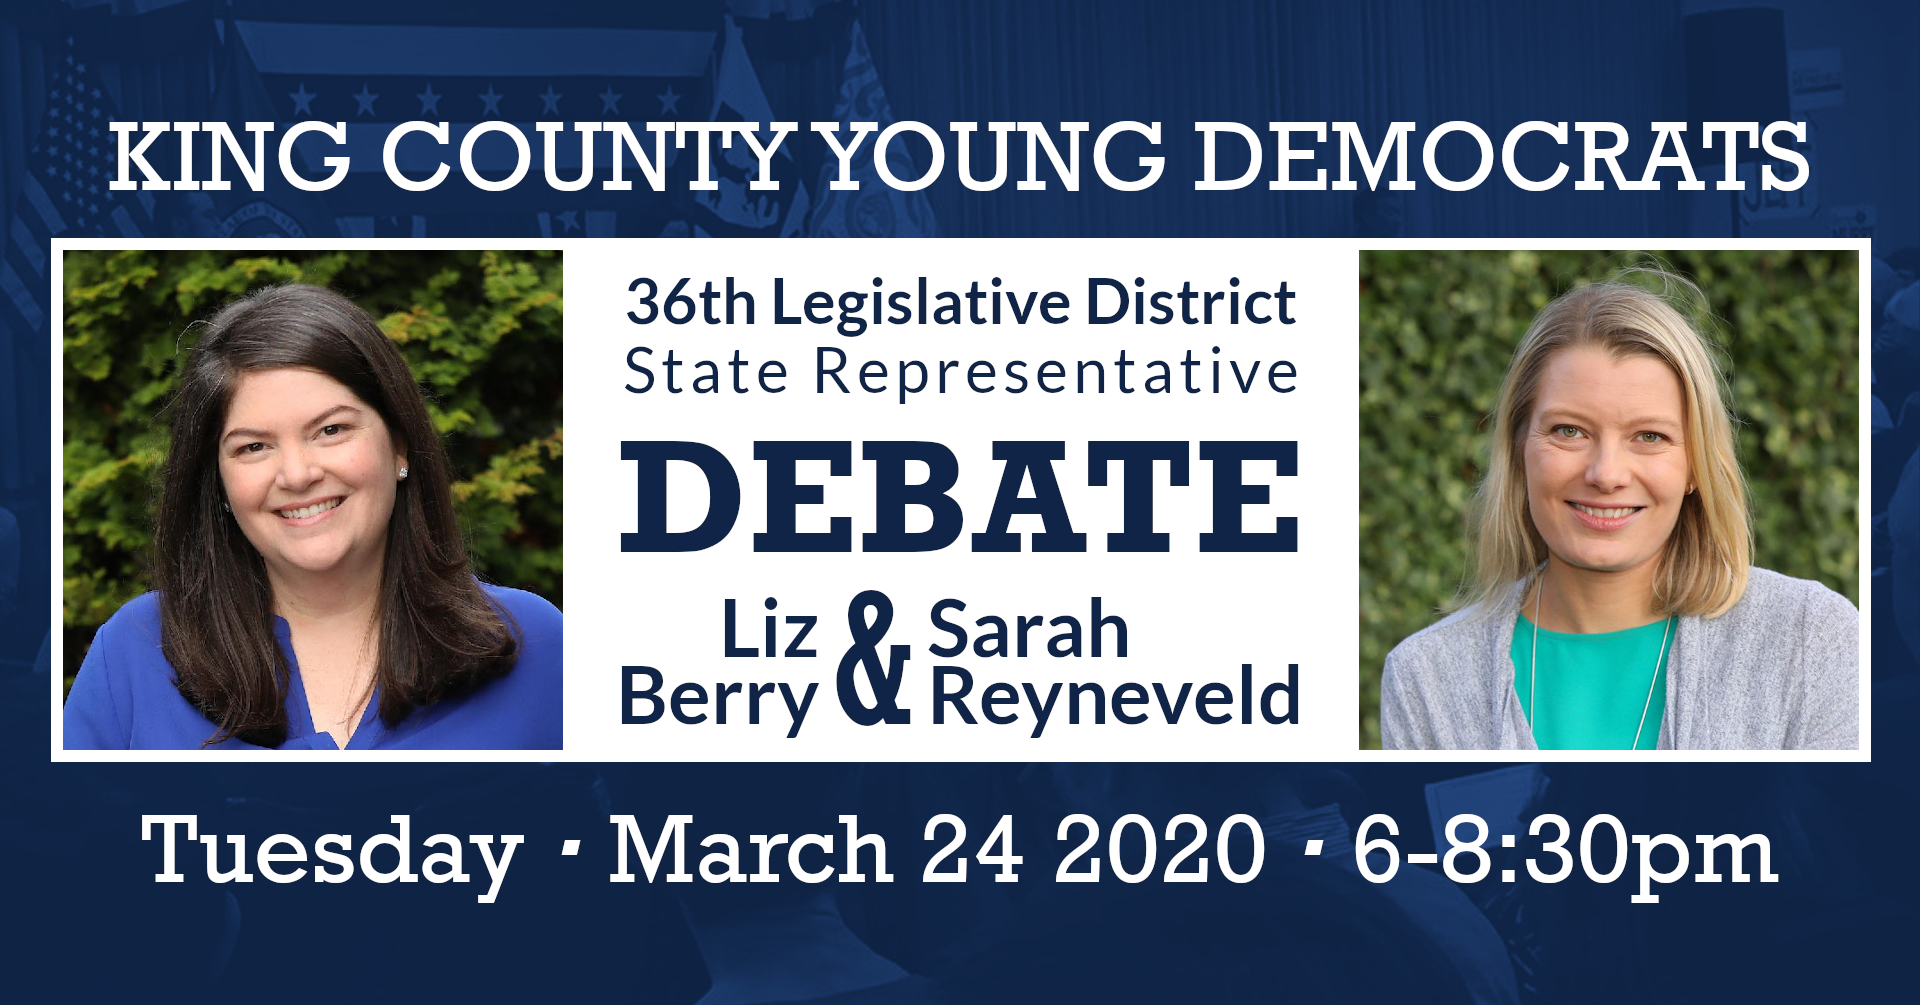 King County Young Democrats 36th Legislative District State Representative Debate: Liz Berry & Sarah Reyneveld. Tuesday, March 24 2020, 6-8:30 PM